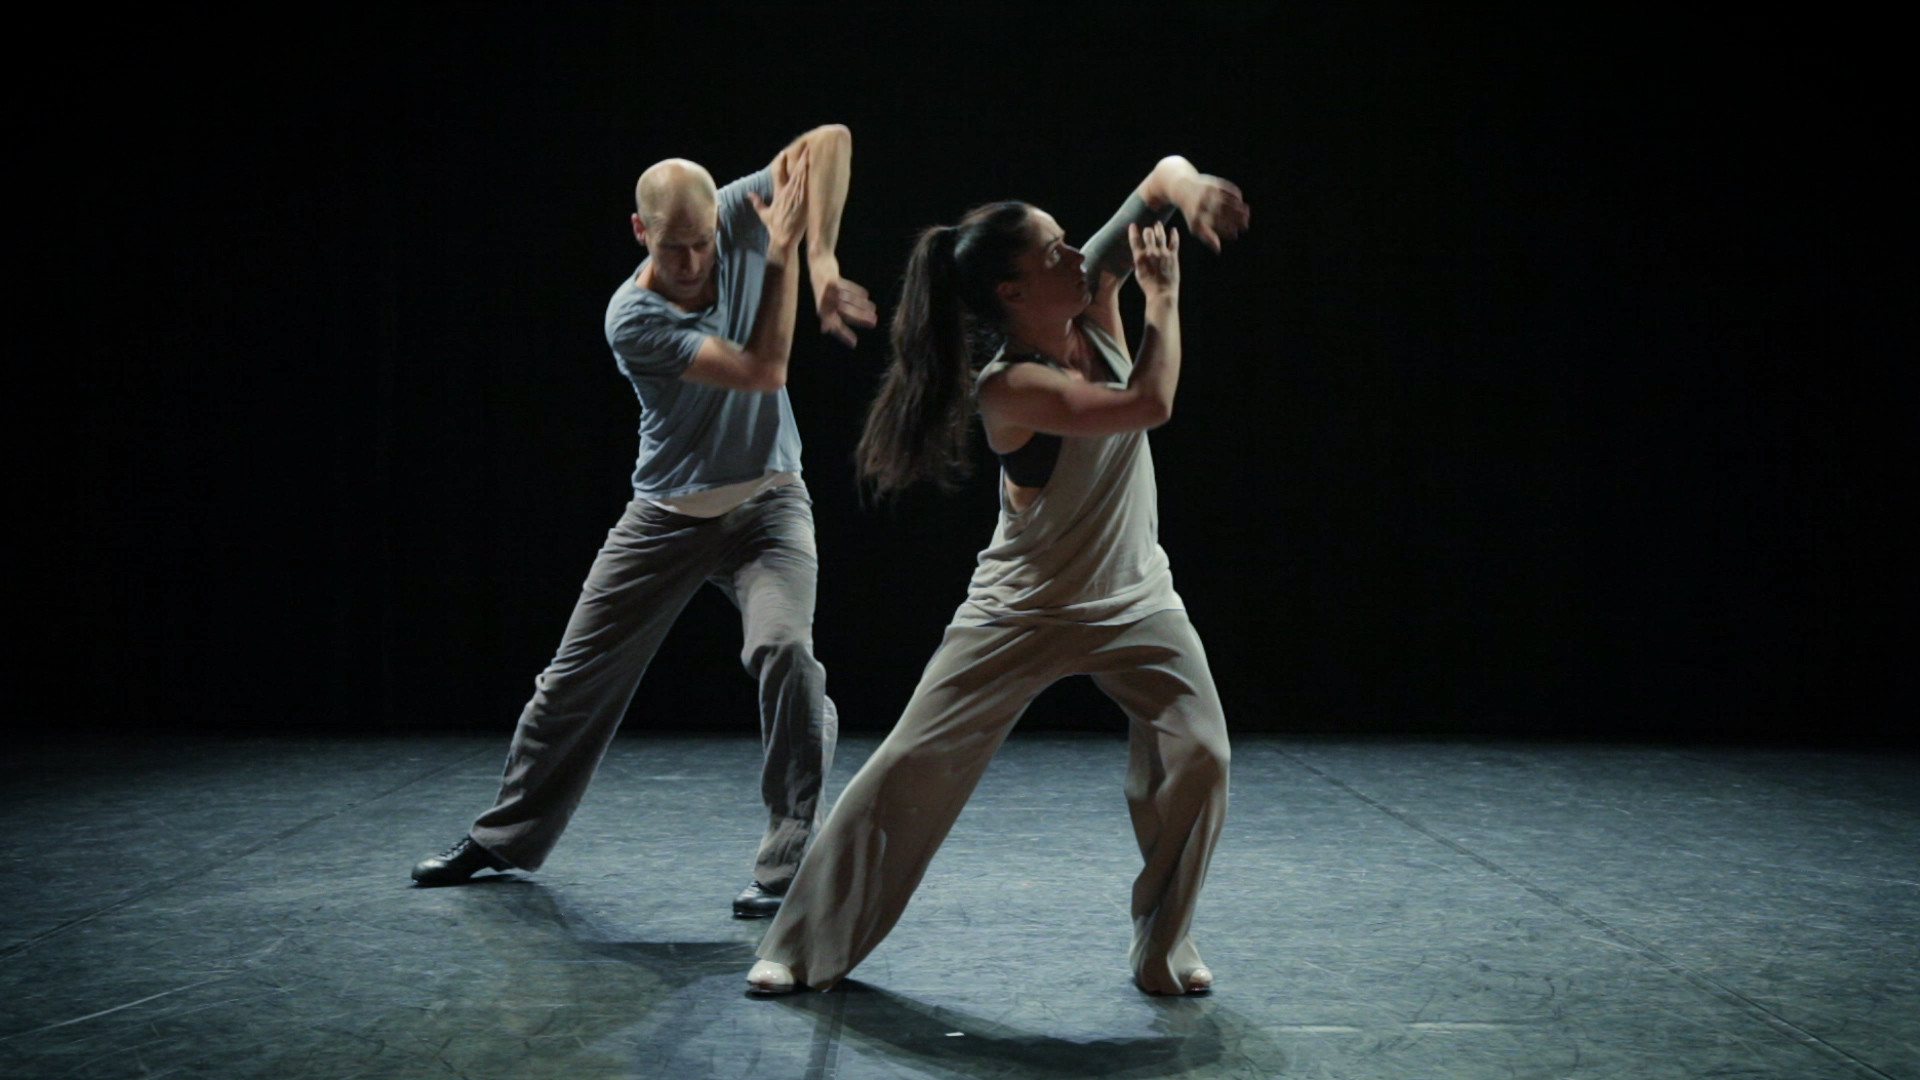 CABOOM #23: KNIVES  (PREMIERE)   2018 | Germany | 5'55'' Director / Choreographer: Sebastian Weber  High energy contemporary tap dance choreography performed by two dancers, their digital doubles, and a jazz drummer.